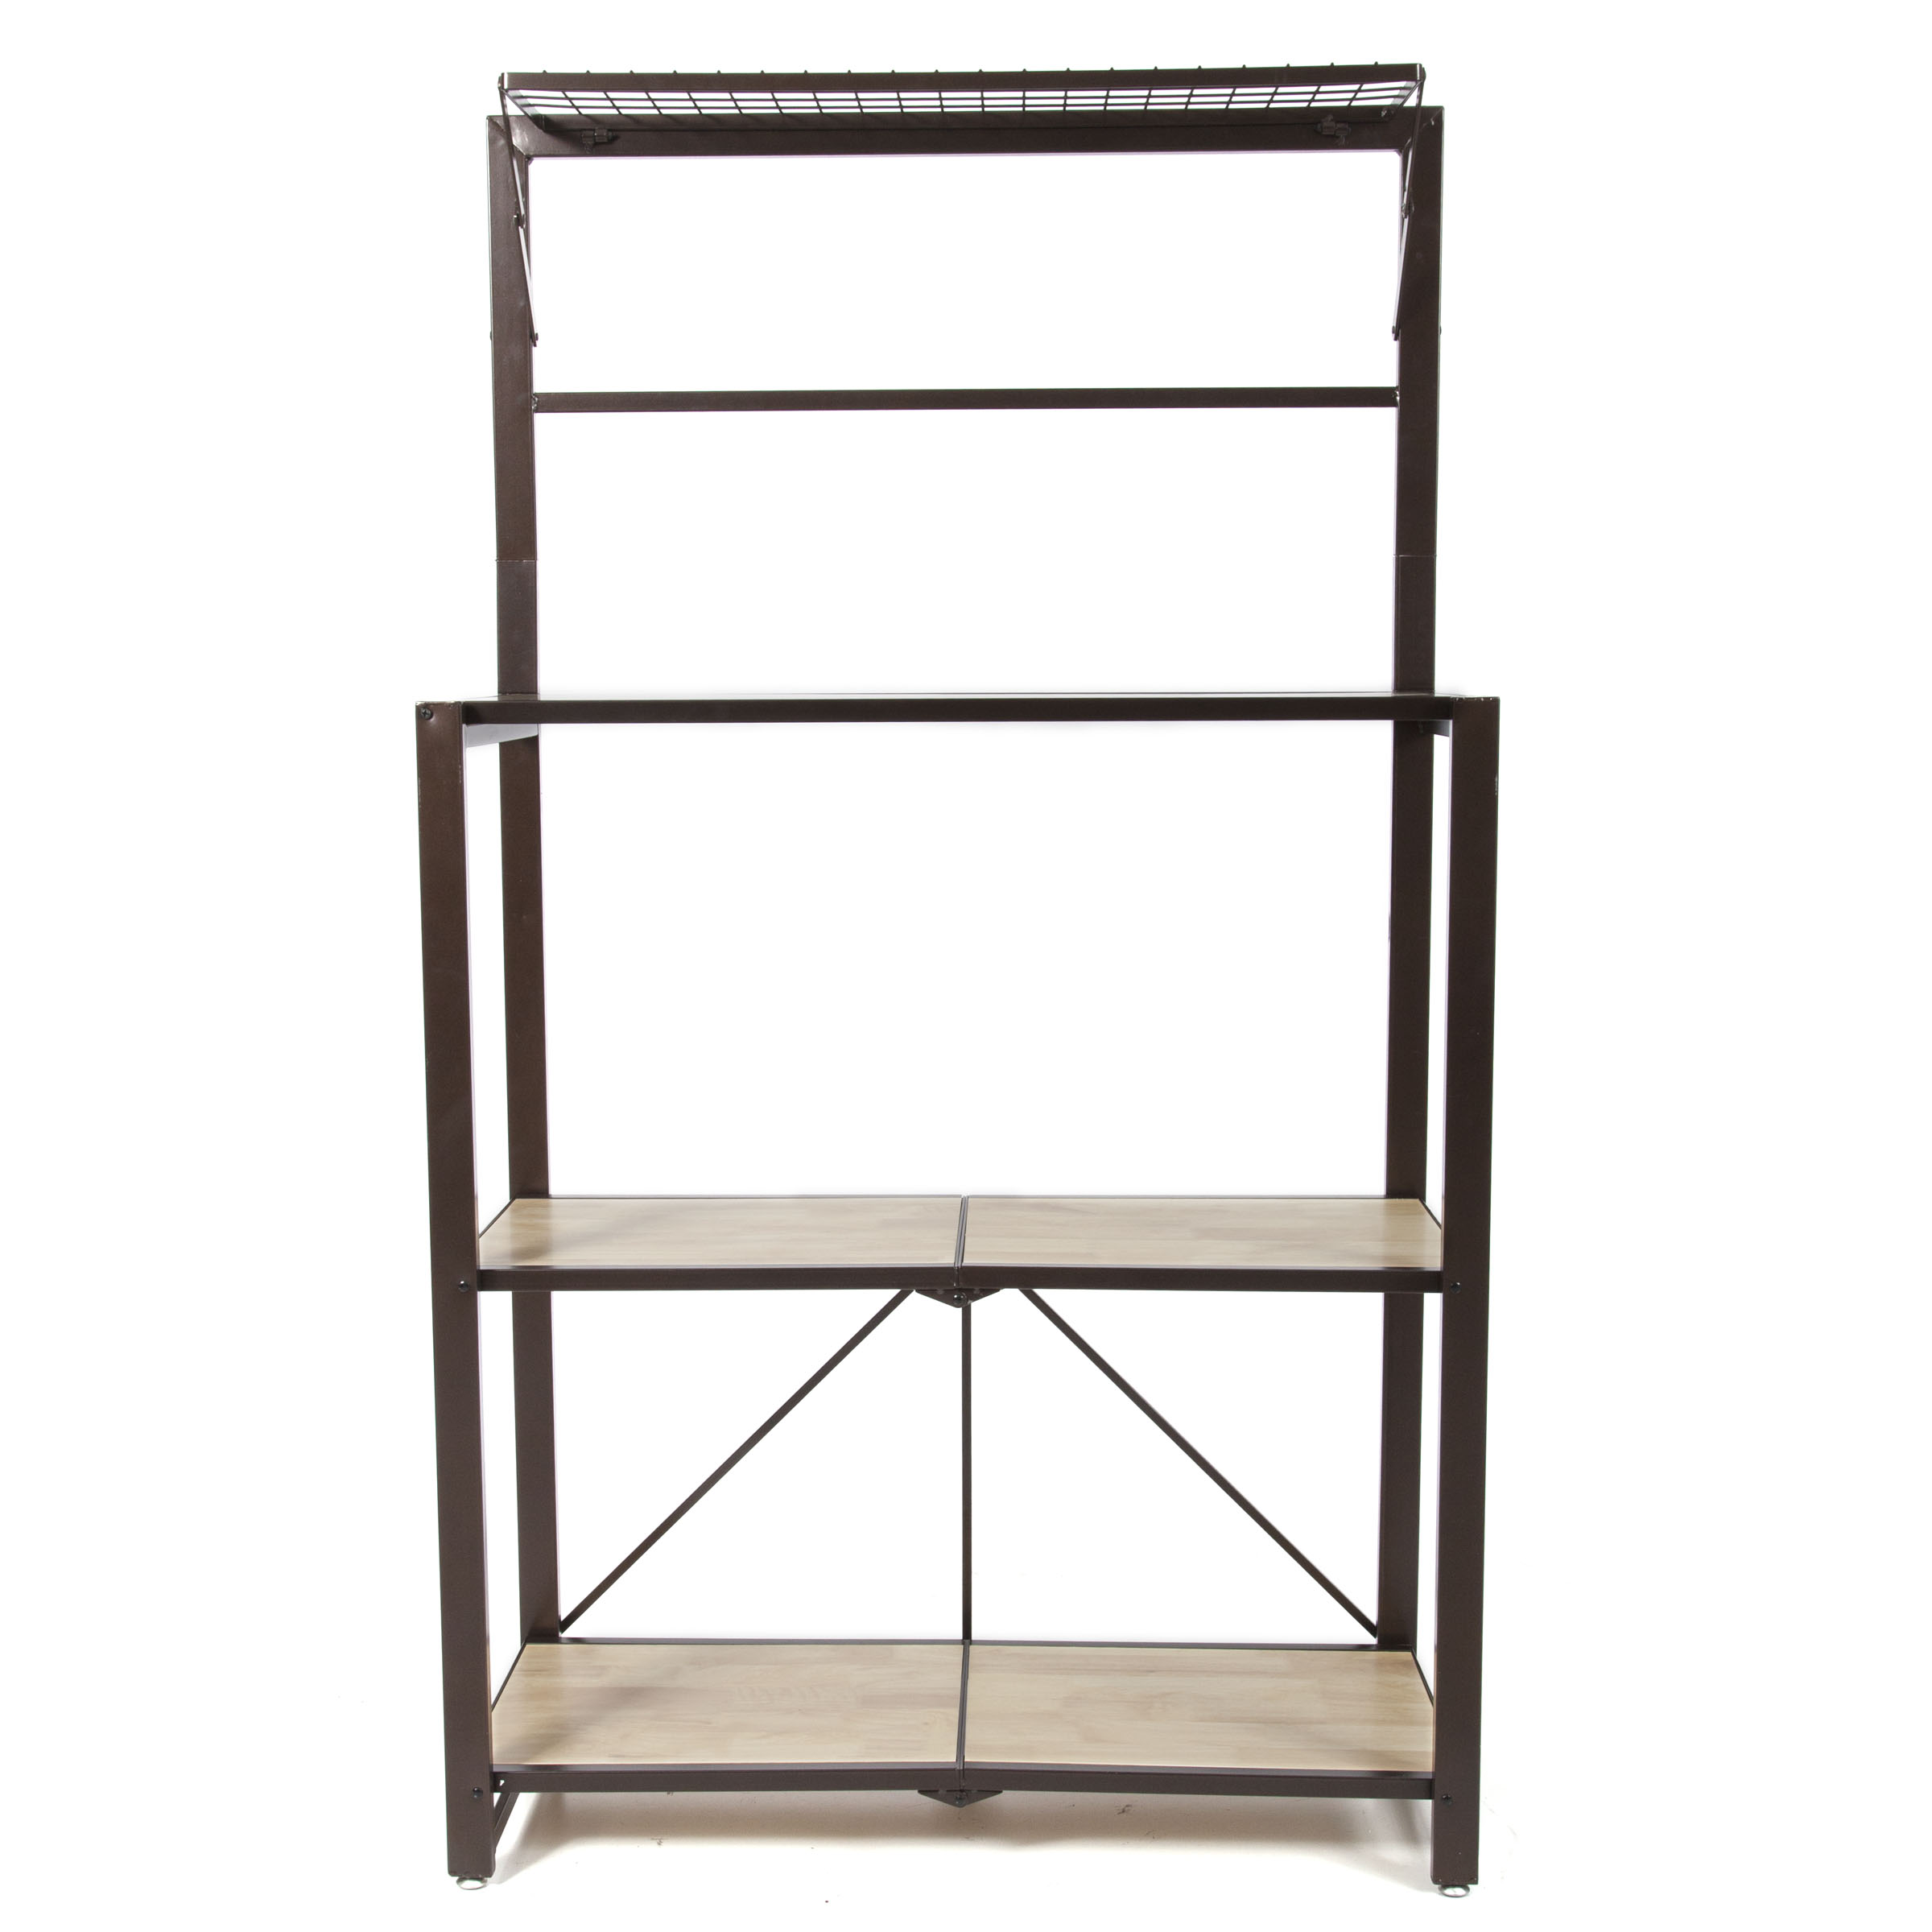 Origami Heavy Duty Durable Organizational Baker's Rack with Wood Shelf, Brown